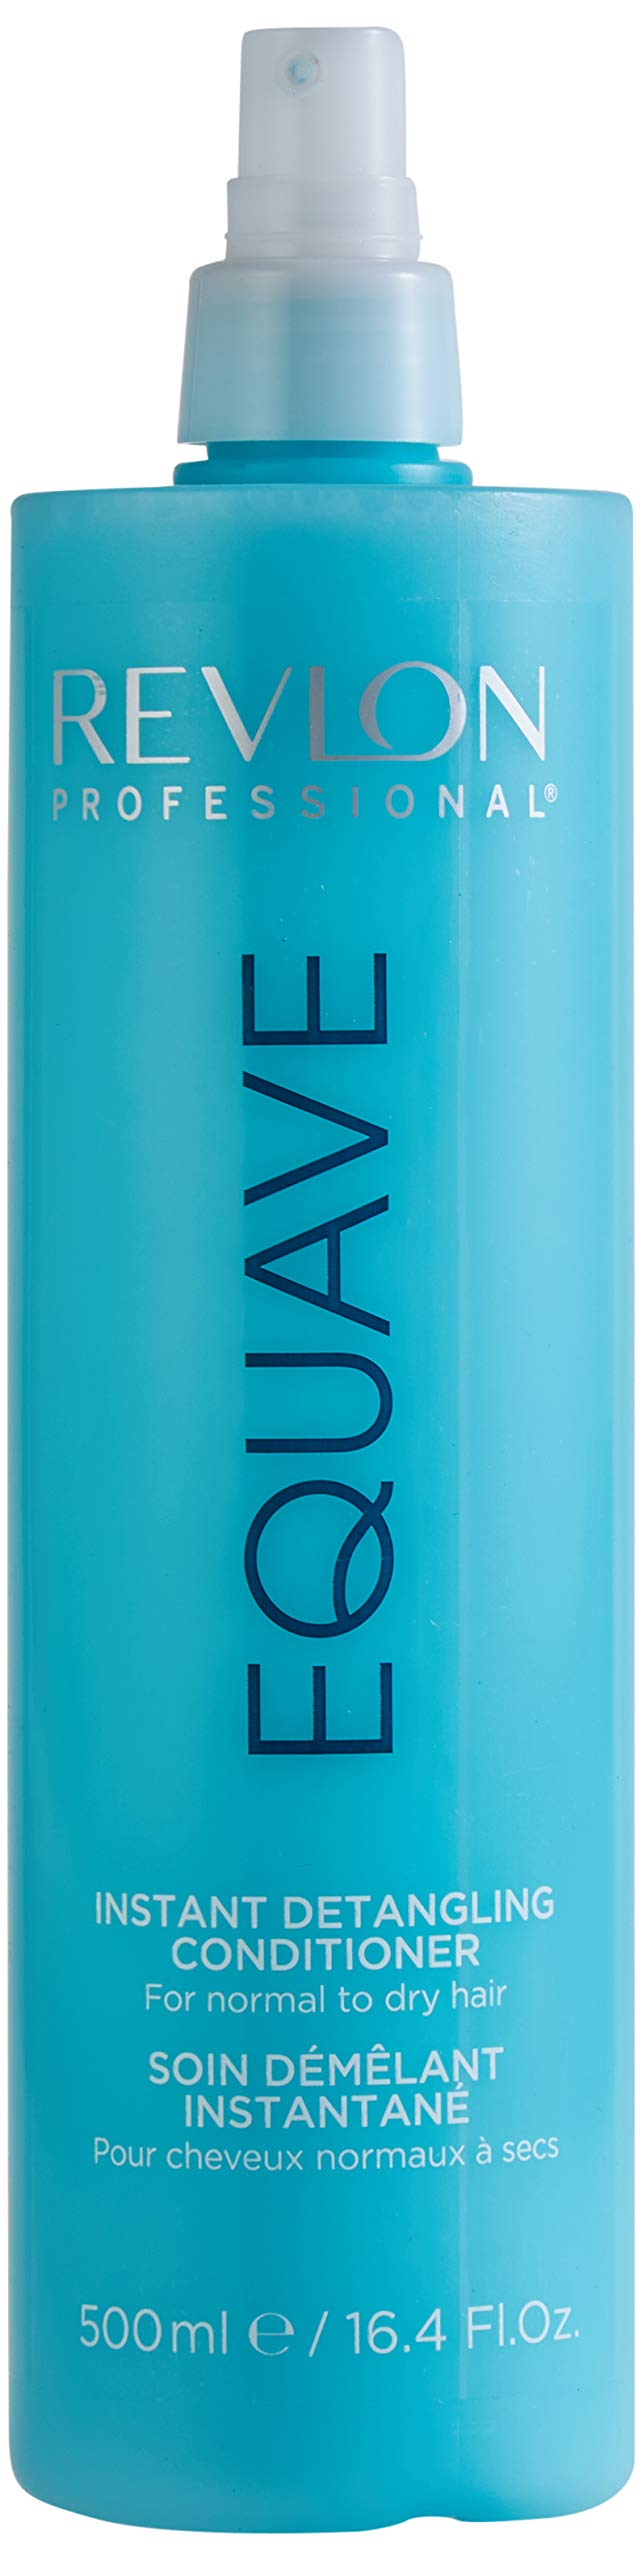 Equave by Revlon Professional Hydro Nutritive Detangling Conditioner 500ml